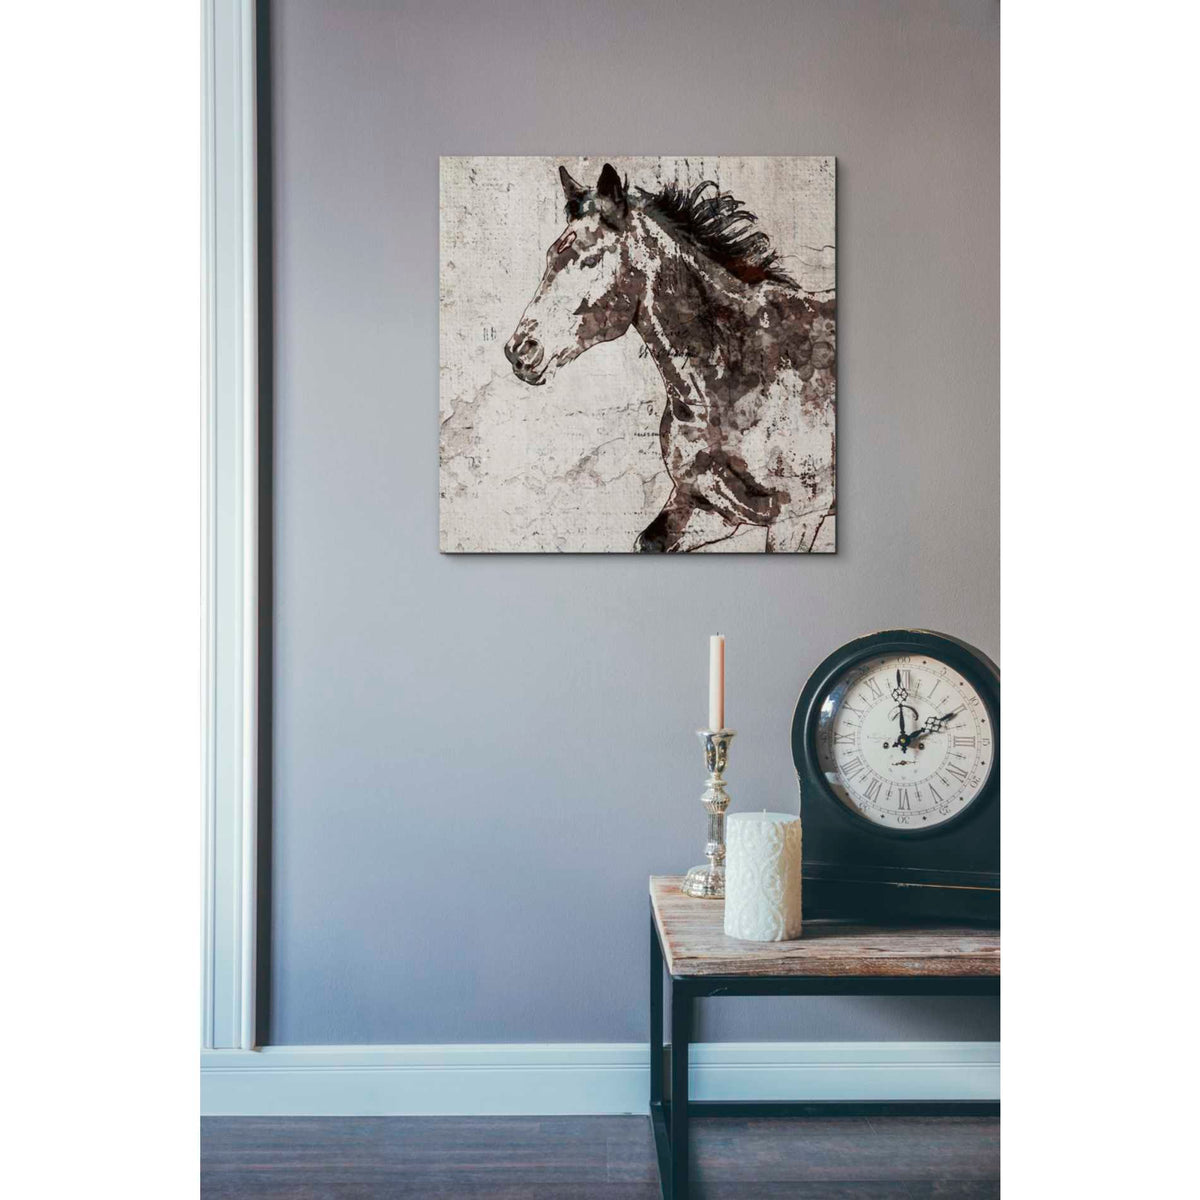 Epic Graffiti 'Galloping Horse 2' by Irena Orlov, Giclee Canvas Wall Art